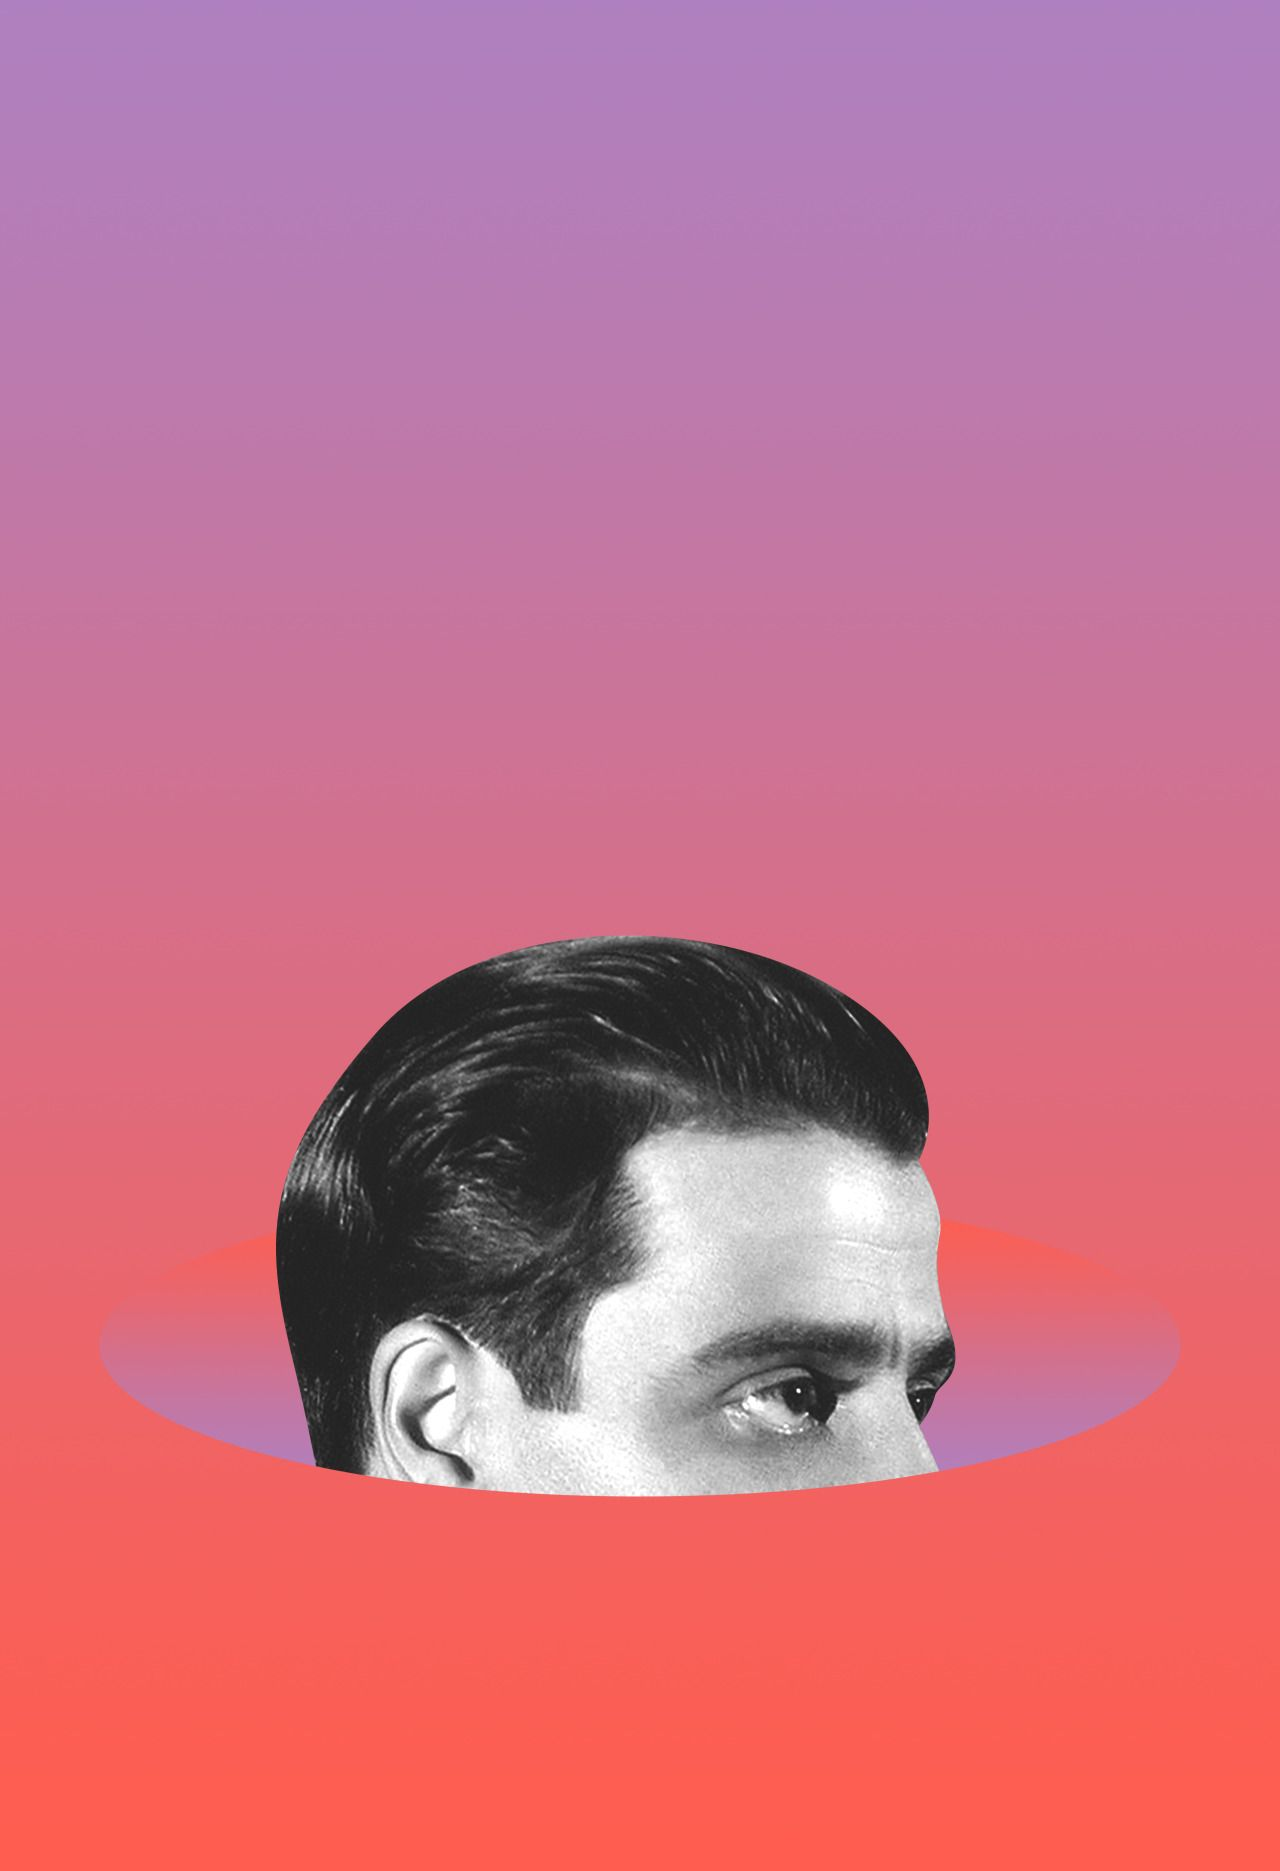 SHOP ~Work copyright © Tyler Spangler tylerclintonspangler@gmail.com Instagram - Facebook